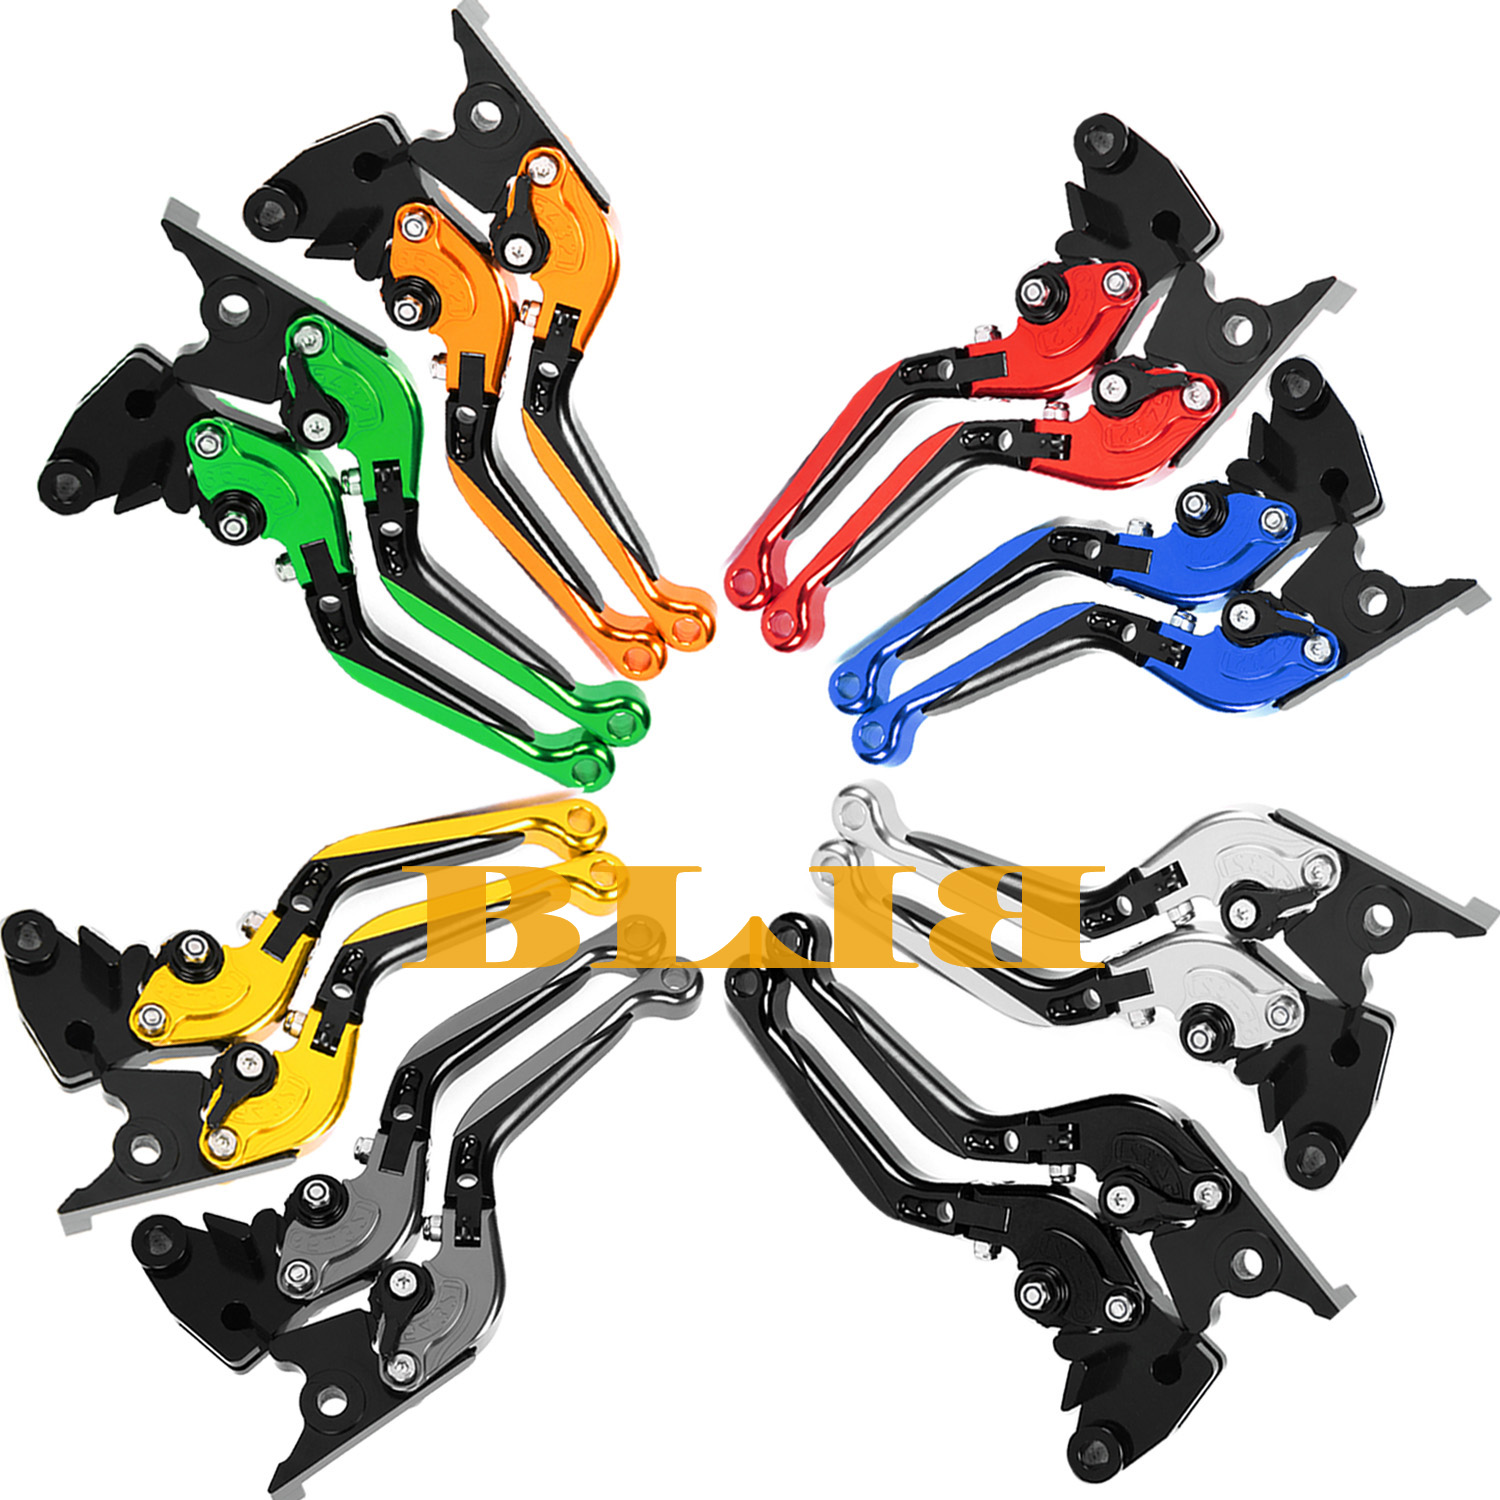 ФОТО For Yamaha XSR 700/900 ABS 2016 Hot High-quality Multicolor Motorcycle Folding&Extending Brake Clutch Levers Dirt Bike Levers